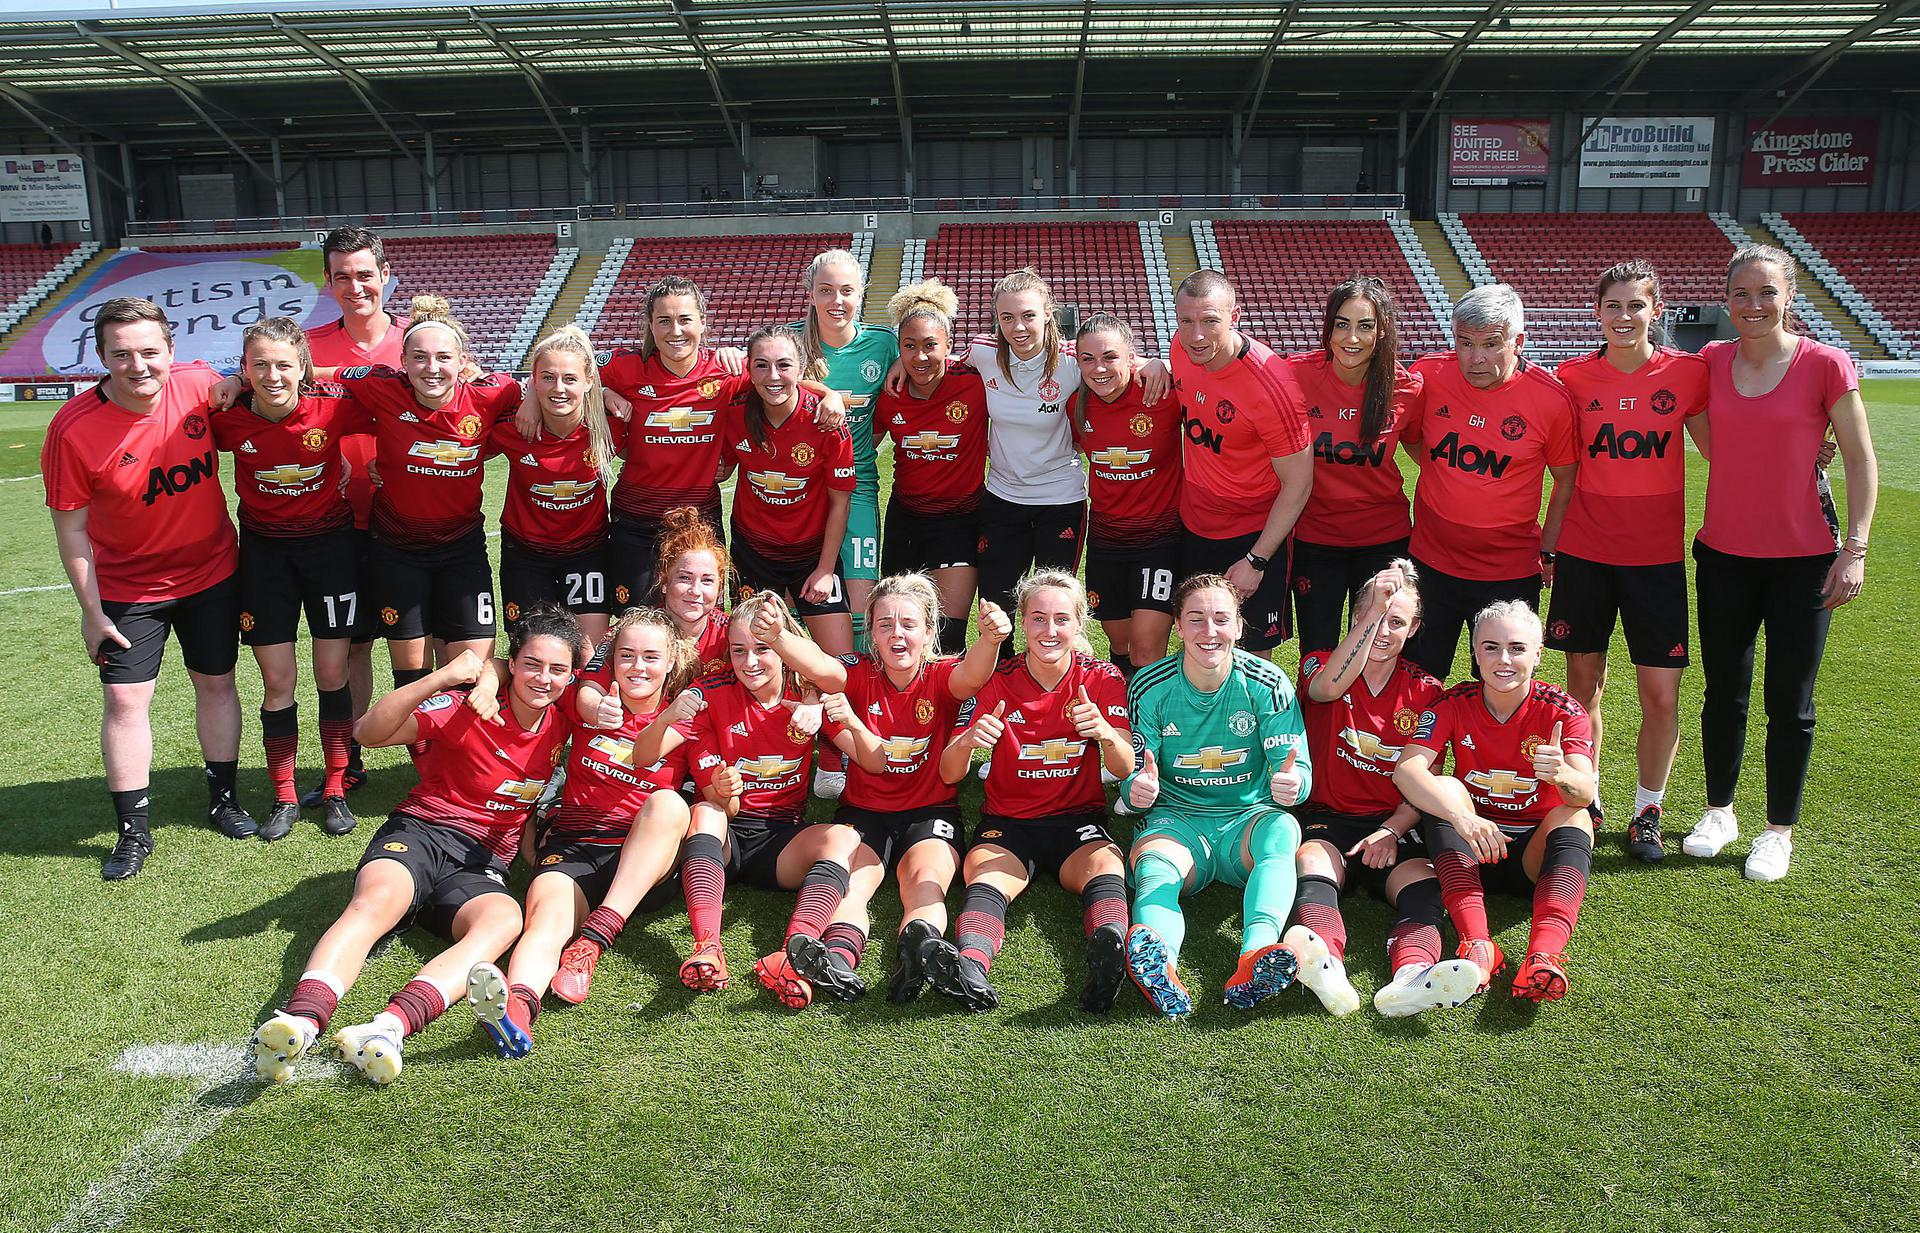 The United Women squad posing for a photo.